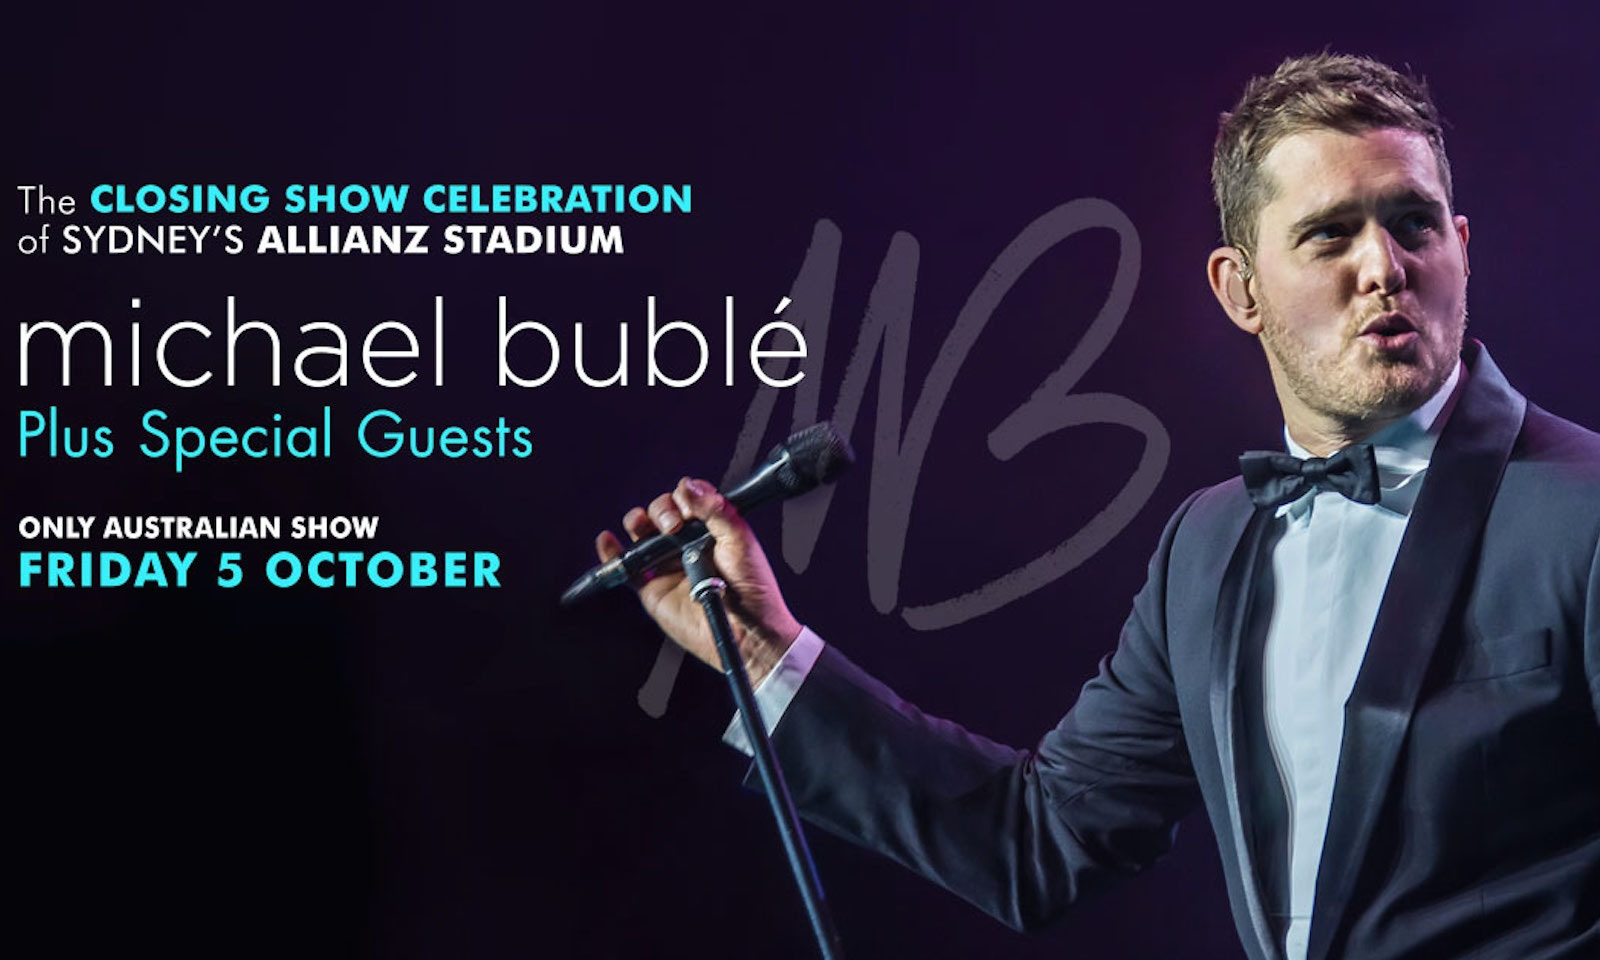 Michael Bublé's One Off Australian Show!